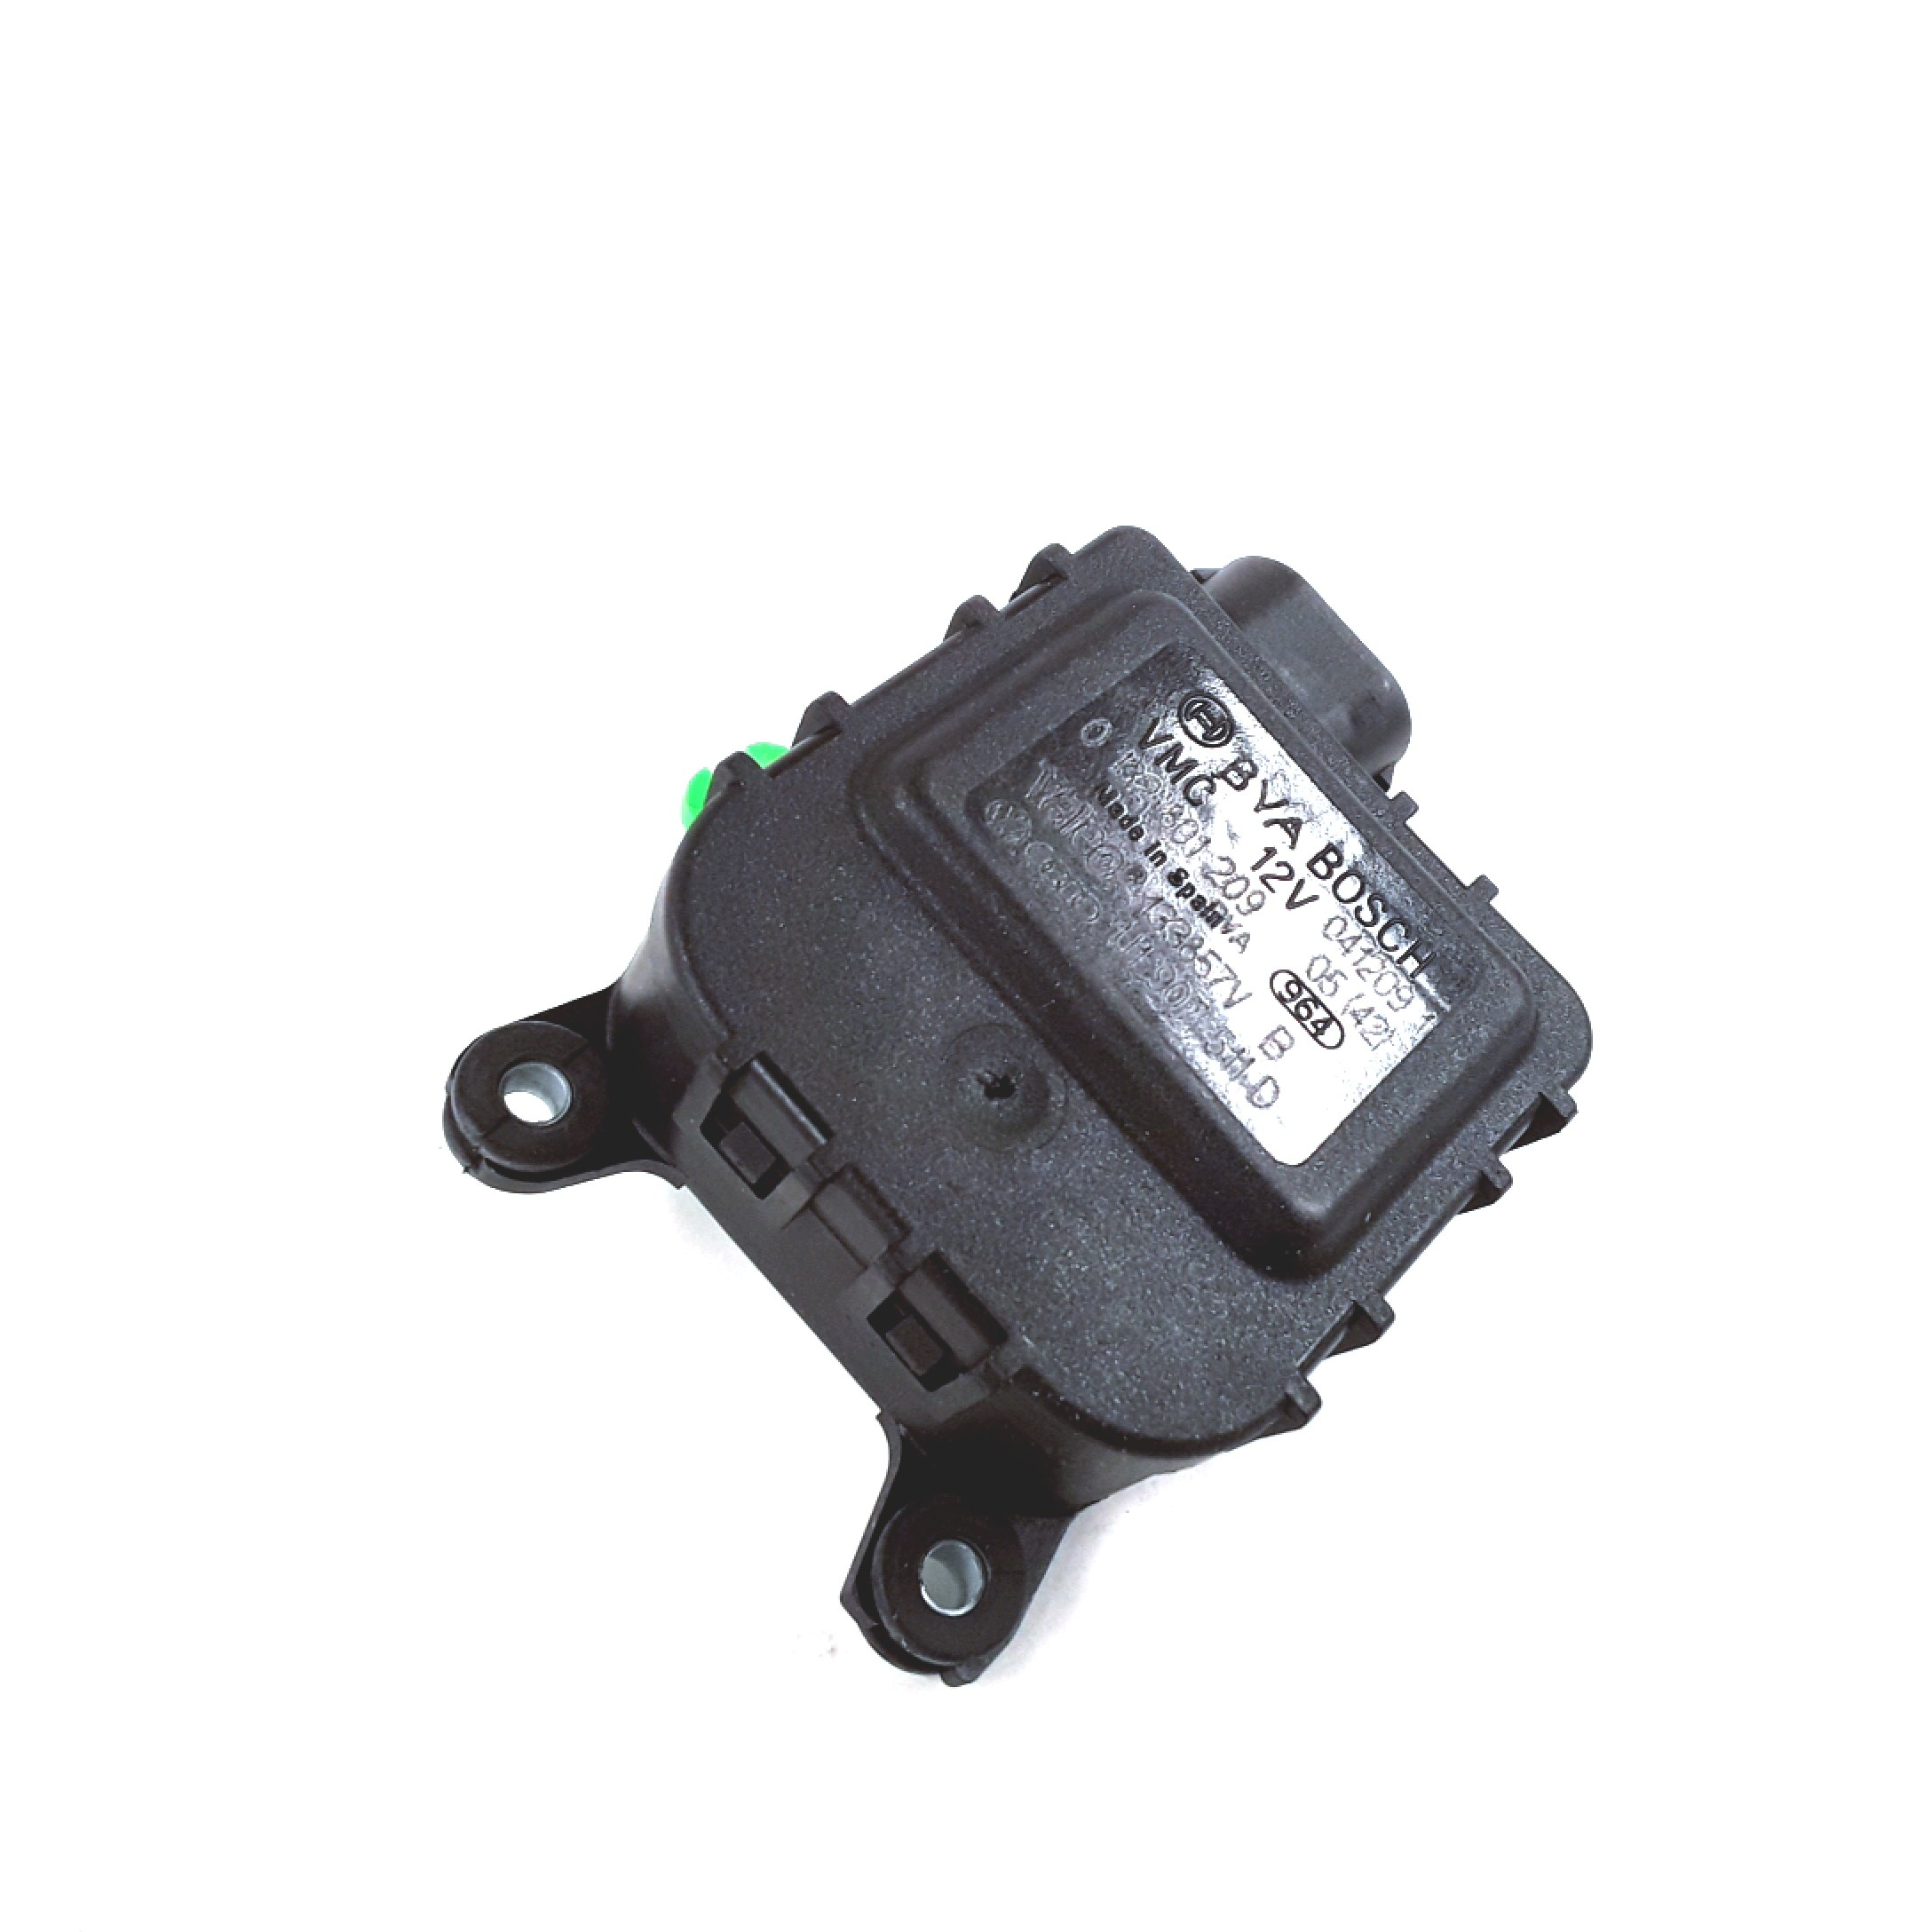 Audi Tt Actuator  Central  Electronic  Flap